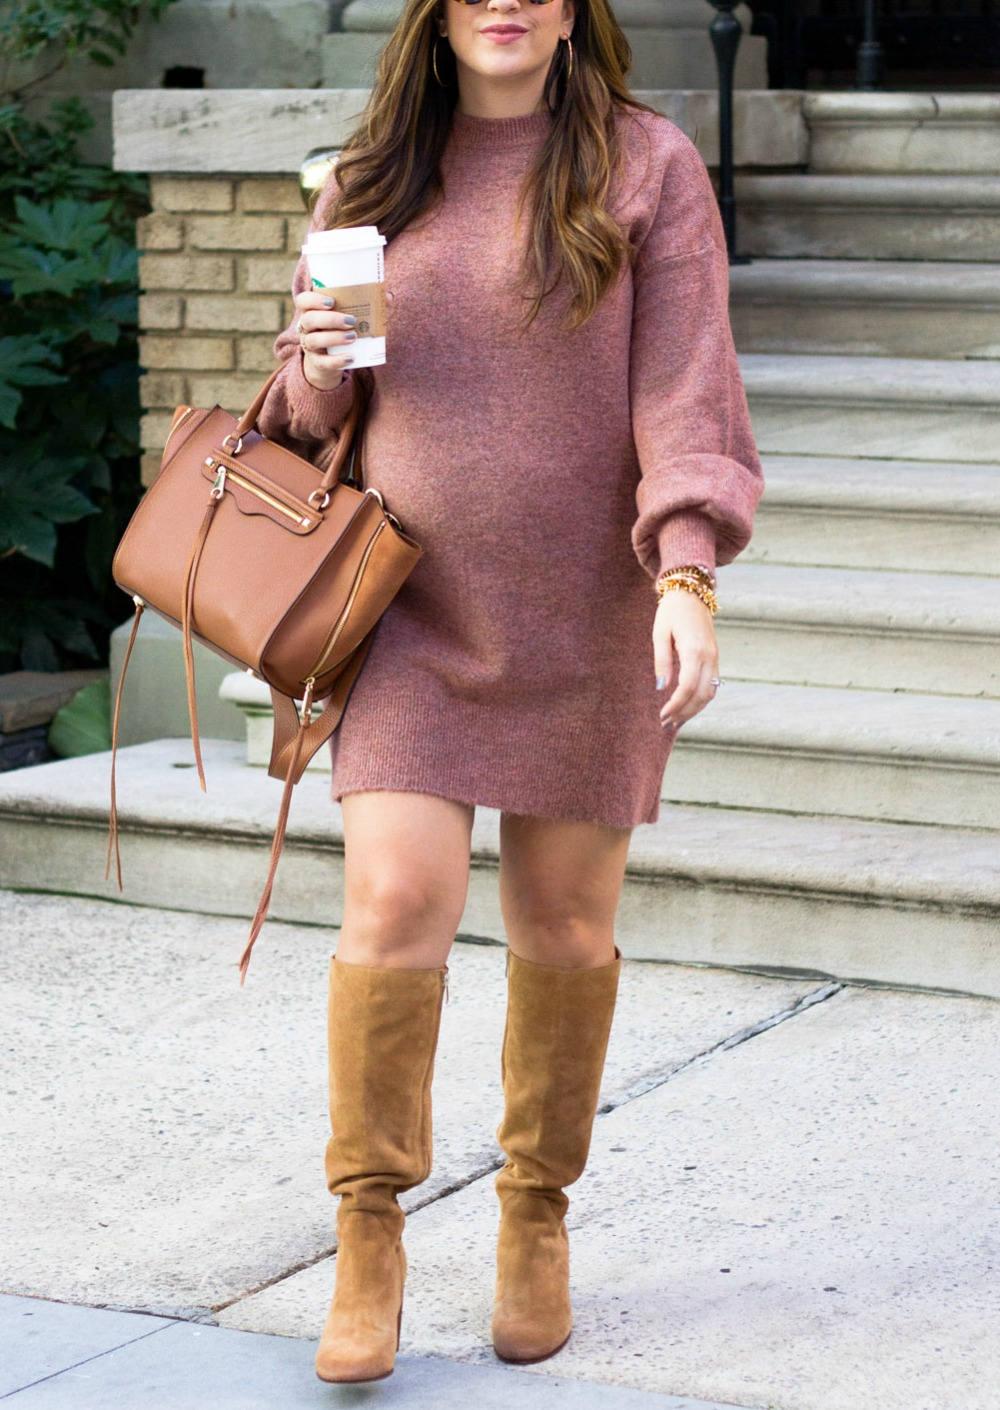 Sweater Dress and High Boots worn by Jaime Cittadino of Sunflowers and Stilettos Fashion Blog